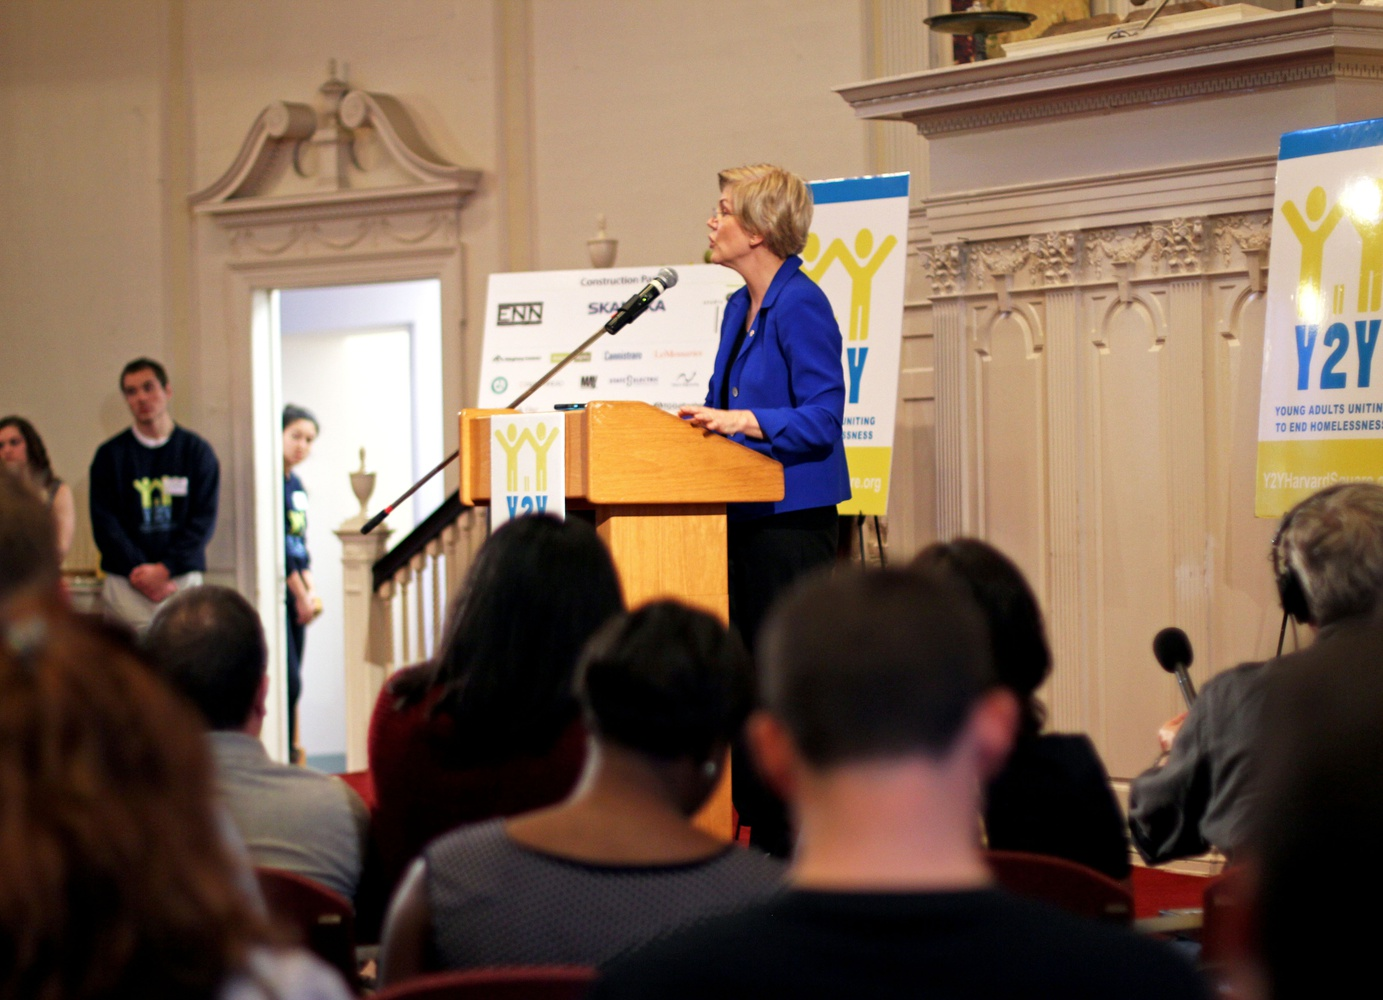 """U.S. Senator Elizabeth Warren spoke at the opening celebration for Y2Y Harvard Square, the youth homeless shelter that will be opening in December. """"All young people have a right to live safely and with dignity,"""" Senator Warren said. """"Y2Y Harvard Square will play an important role as a safe place and resource for youth in our community who need a chance to get back on their feet."""""""